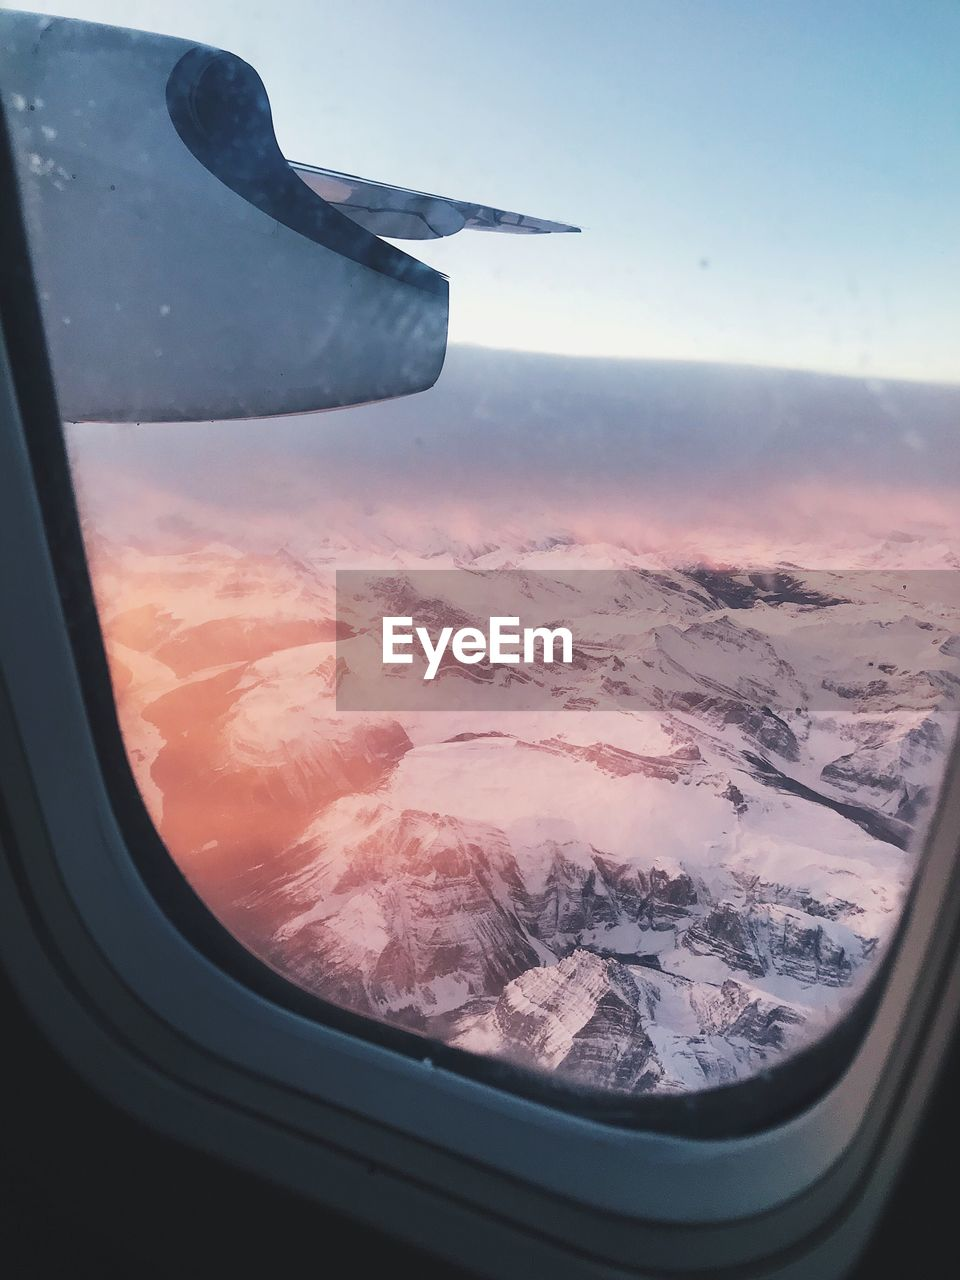 air vehicle, airplane, window, flying, transportation, mode of transportation, scenics - nature, sky, glass - material, beauty in nature, vehicle interior, mid-air, landscape, travel, no people, nature, aircraft wing, environment, transparent, aerial view, outdoors, glass